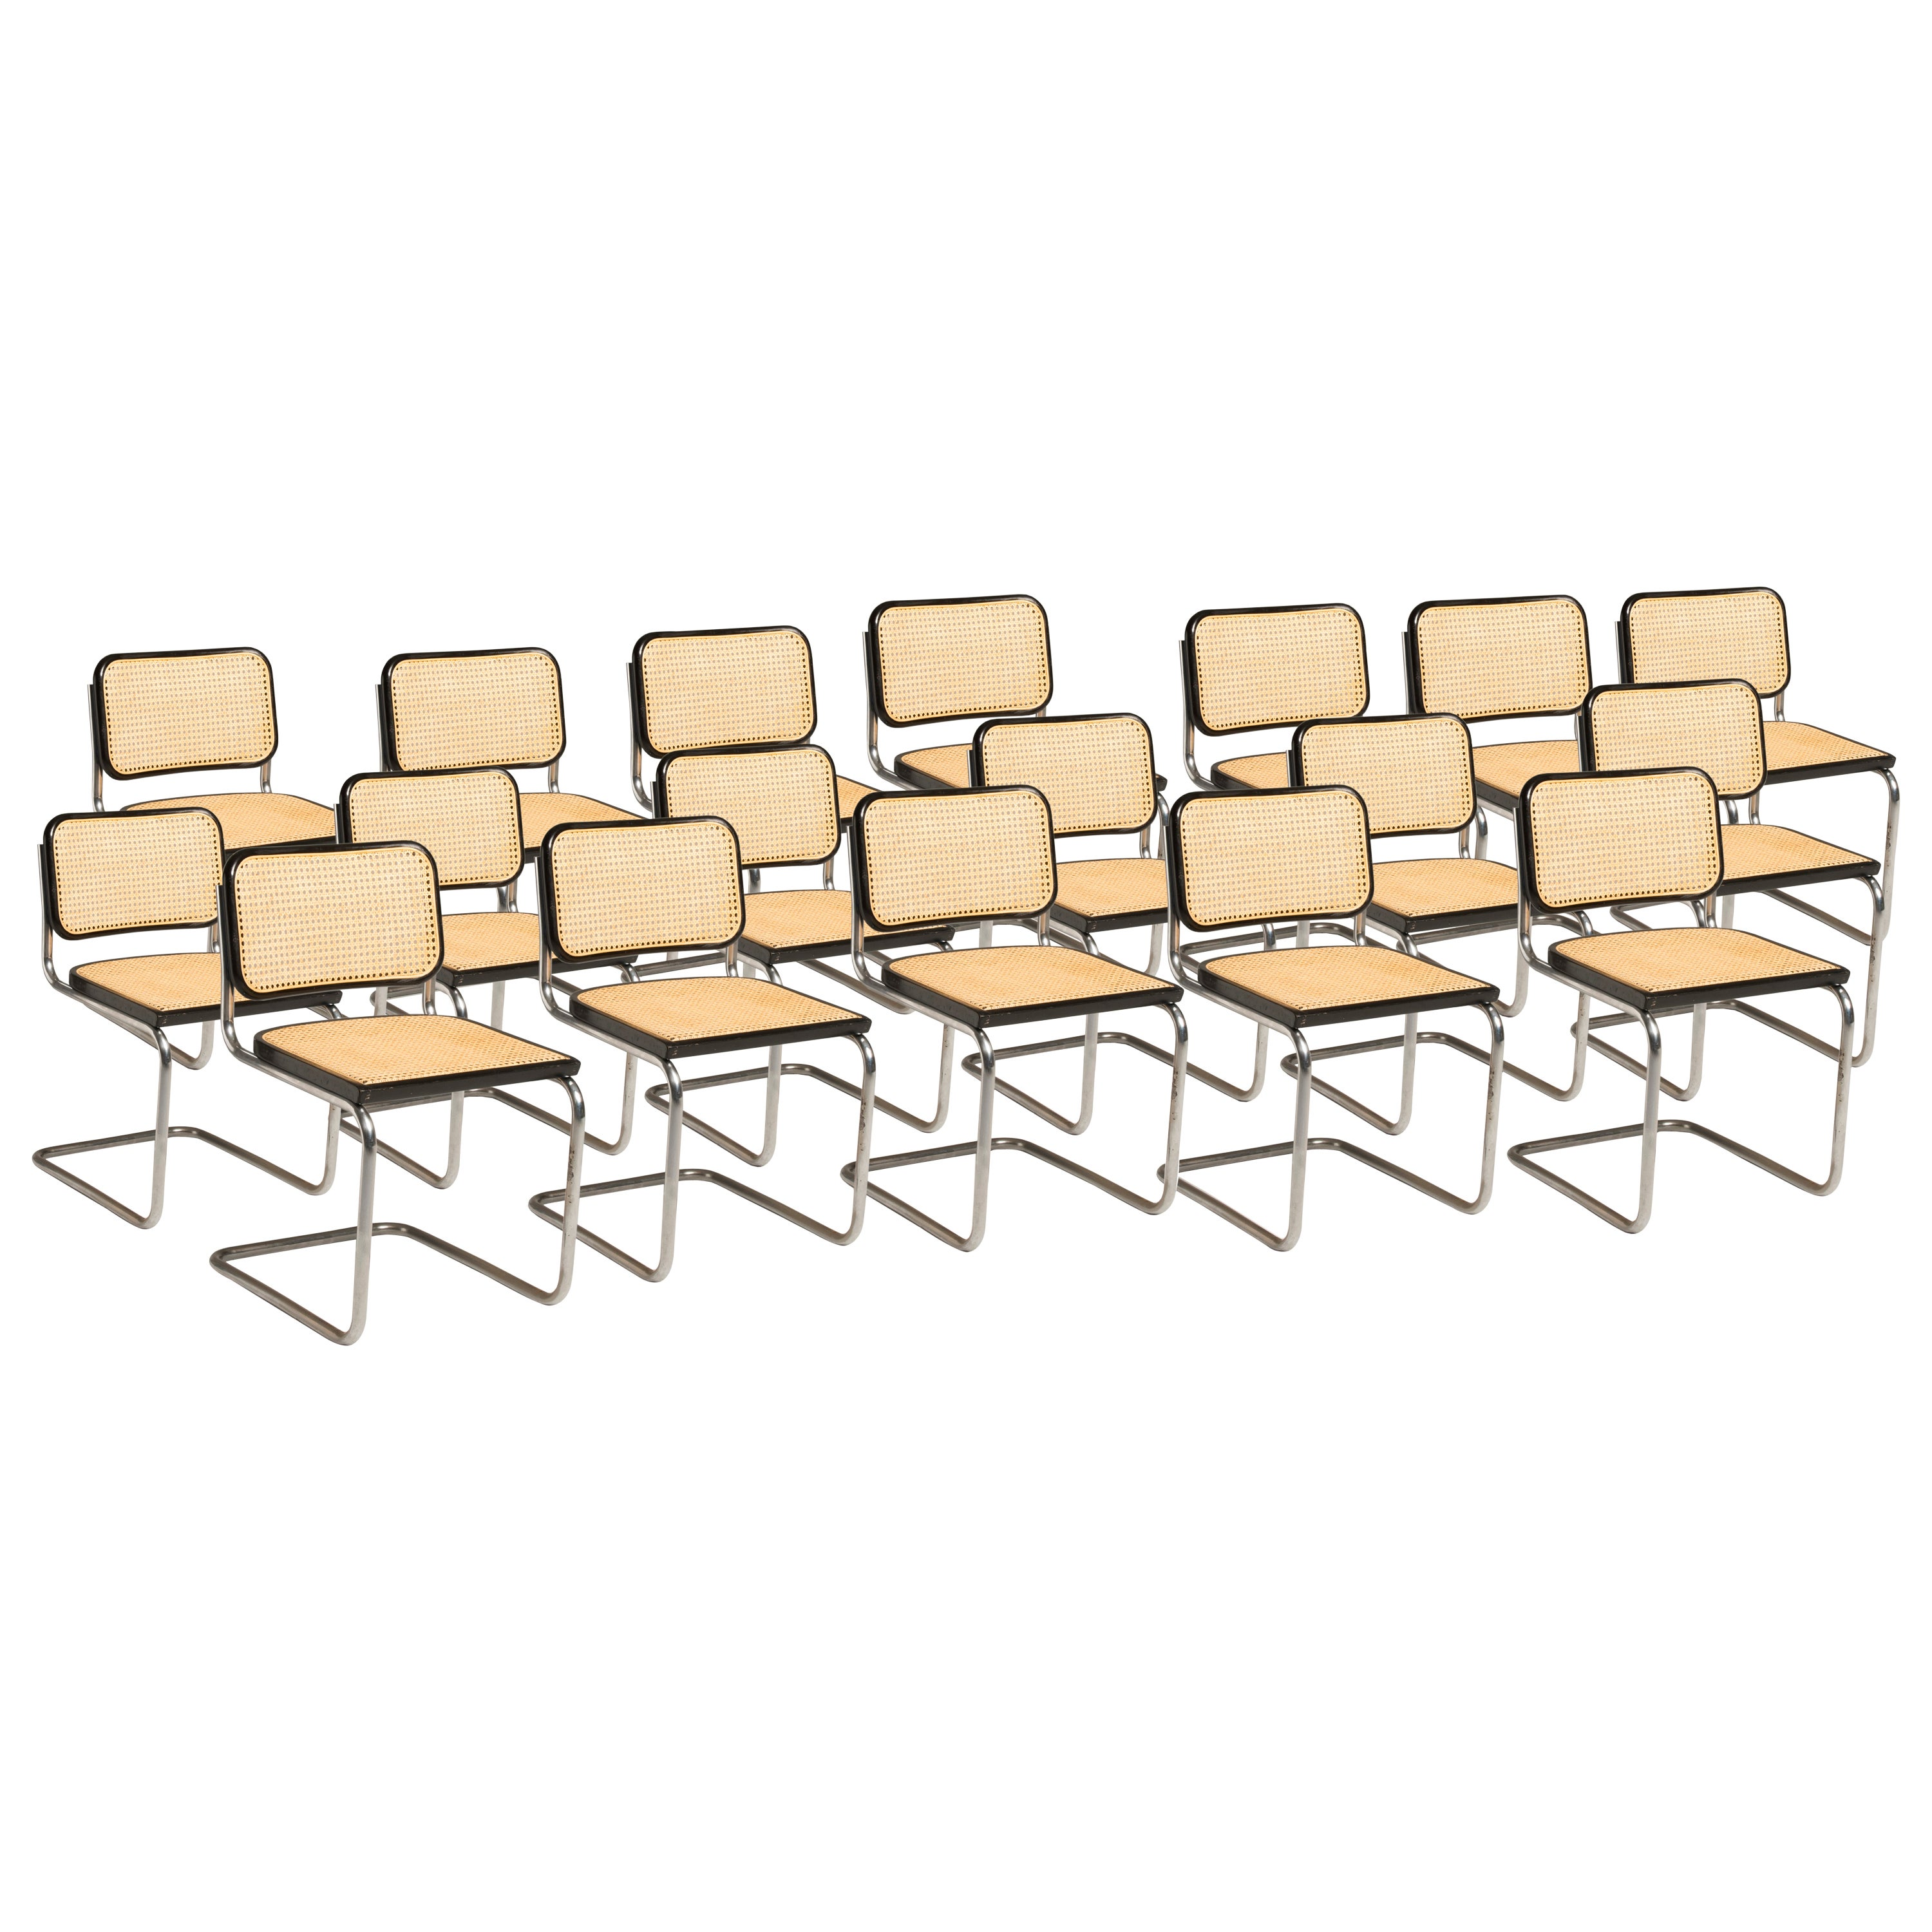 Bauhaus Marcel Breuer Cesca Chairs for Knoll Production, 8 Chairs Available